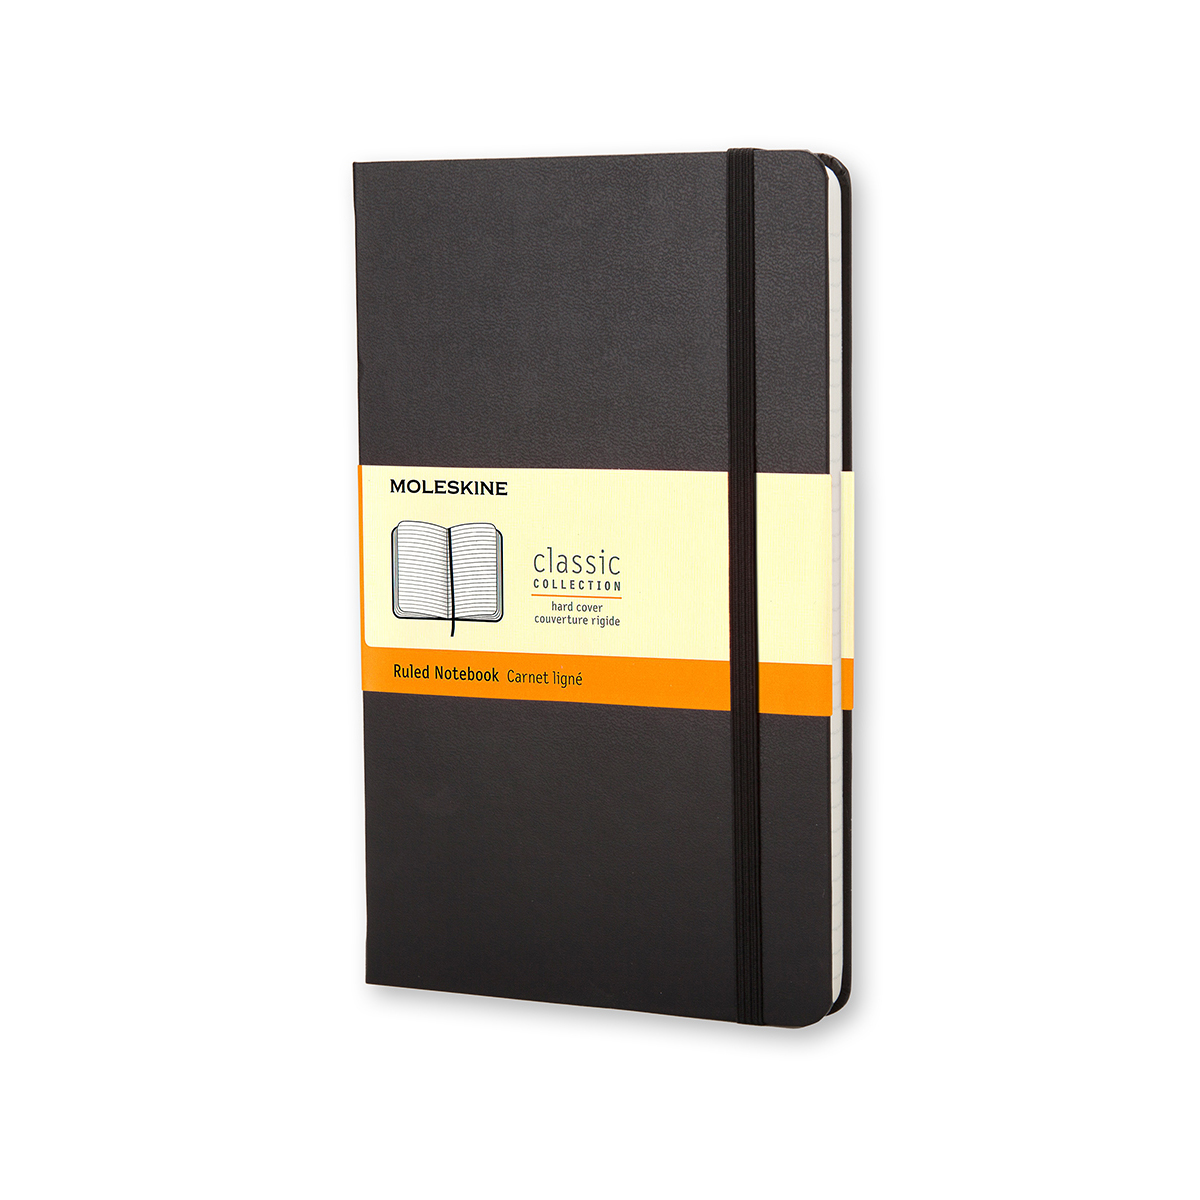 Paper pads or notebooks Moleskine Pocket Ruled Hardcover 192Pg 90x140mm Black Ref MM710